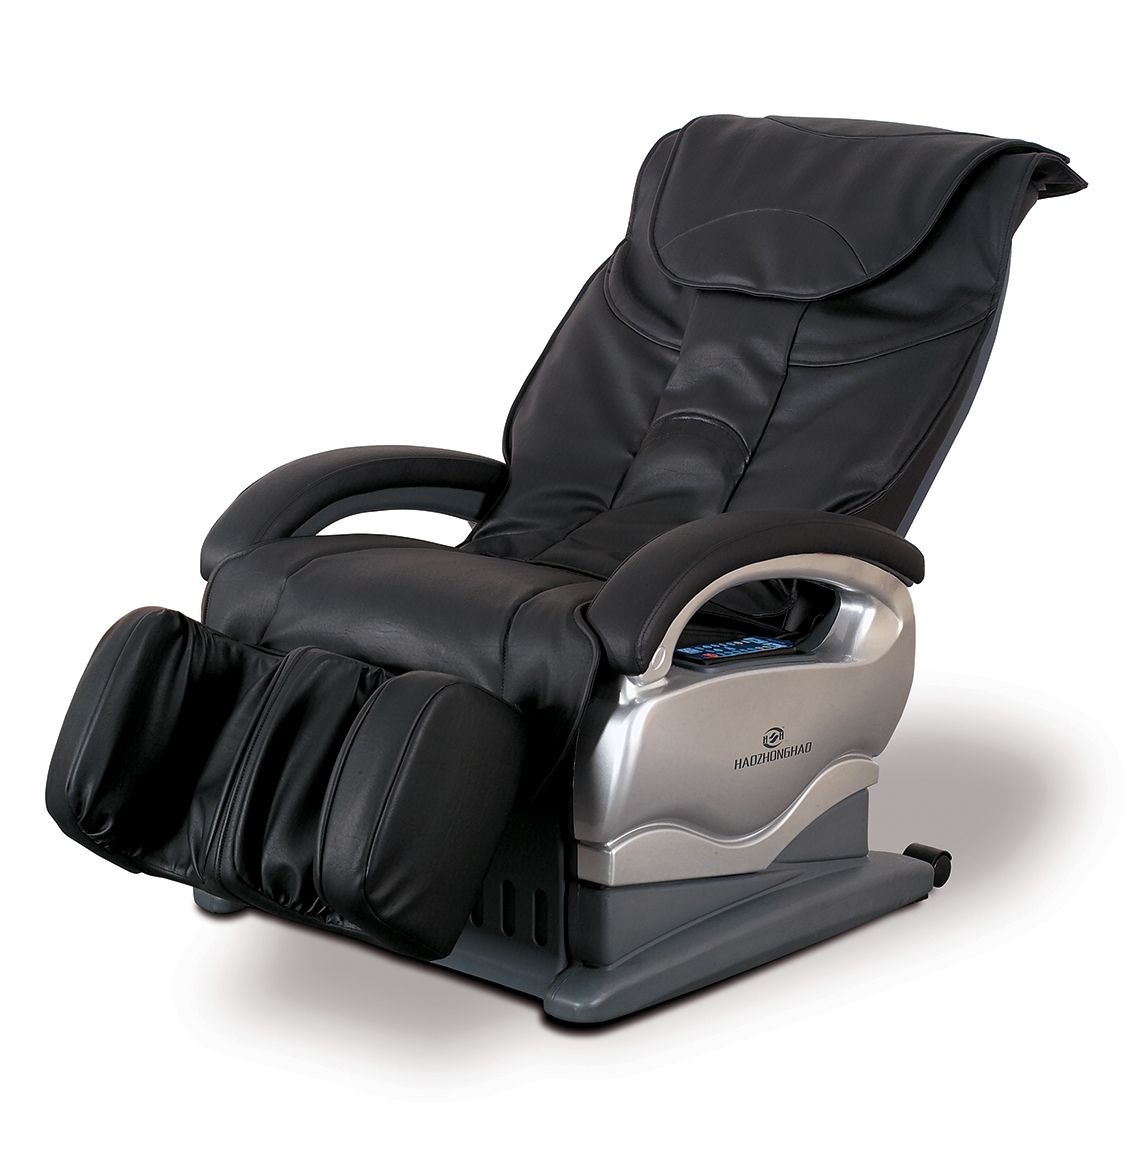 chairs massage gravity chair on presidential buy sale bccc infinity spinal for zero